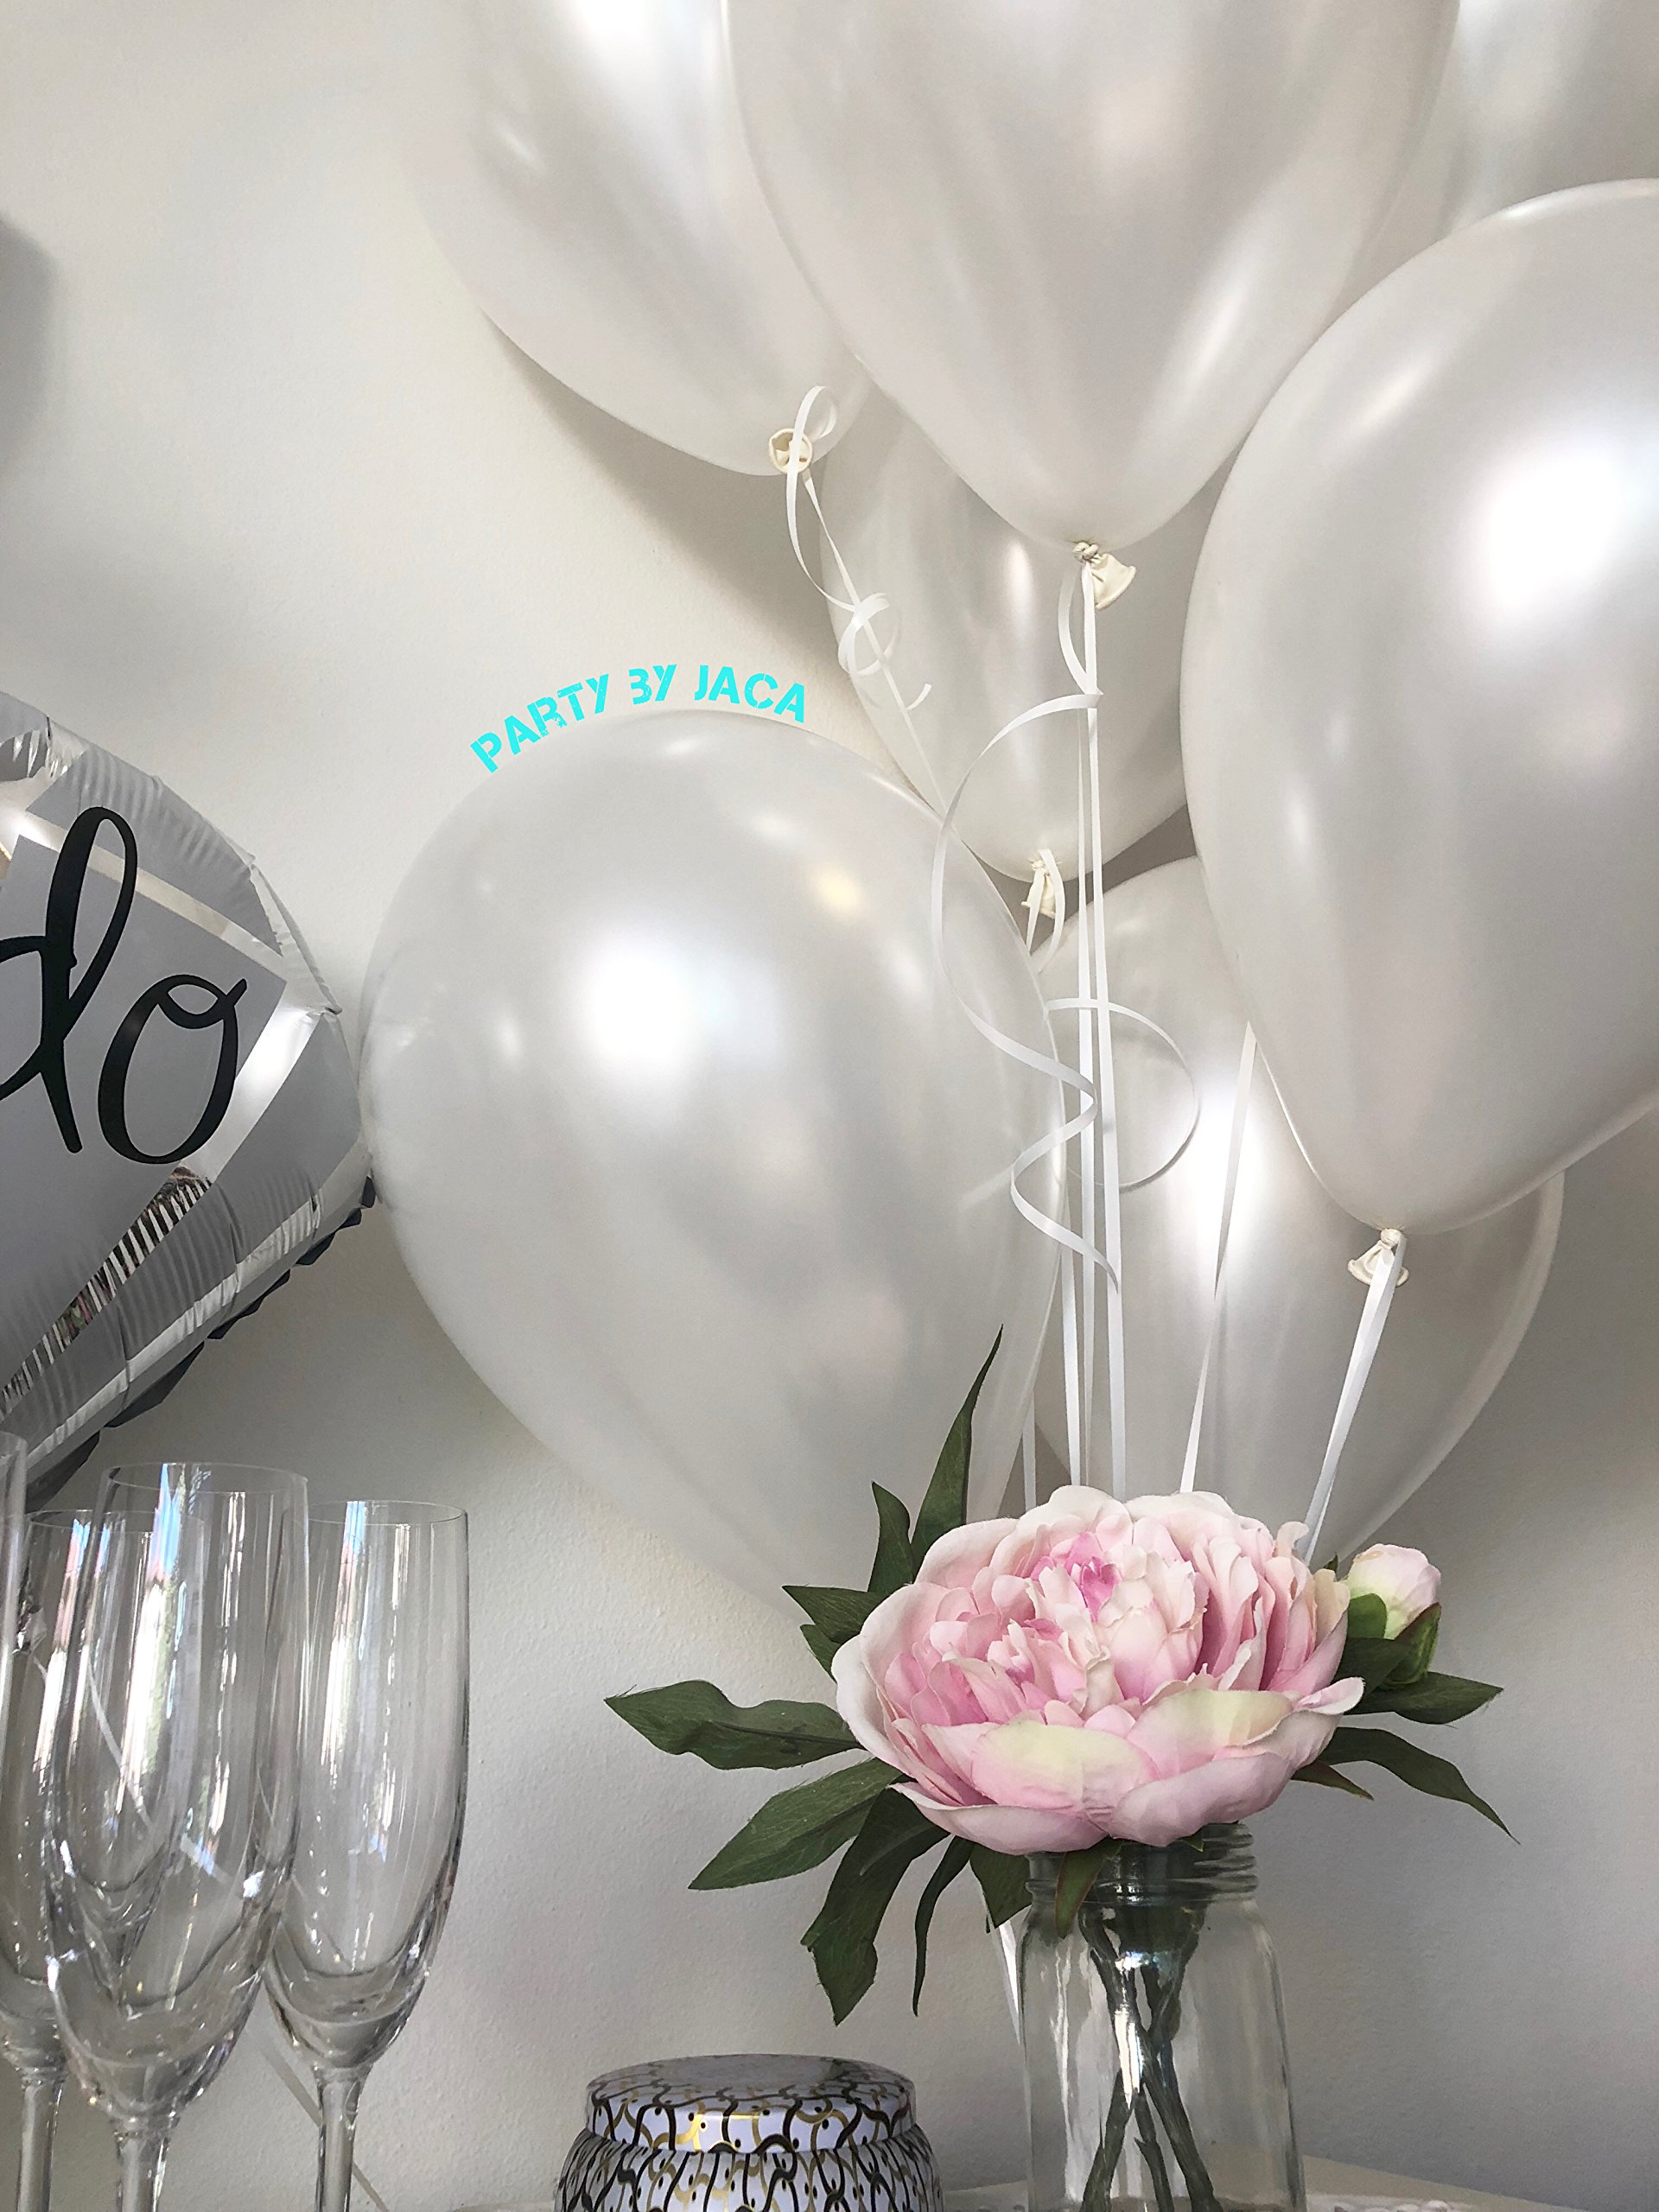 Silver & White Classy Hens Bachelorette KIT - 15 Piece Set: 8 Latex Balloons - 1 3D FOIL Banner Bride - 1 Satin Trimmed Veil - 1 Shiny Ring Balloon by JACA (Image #2)